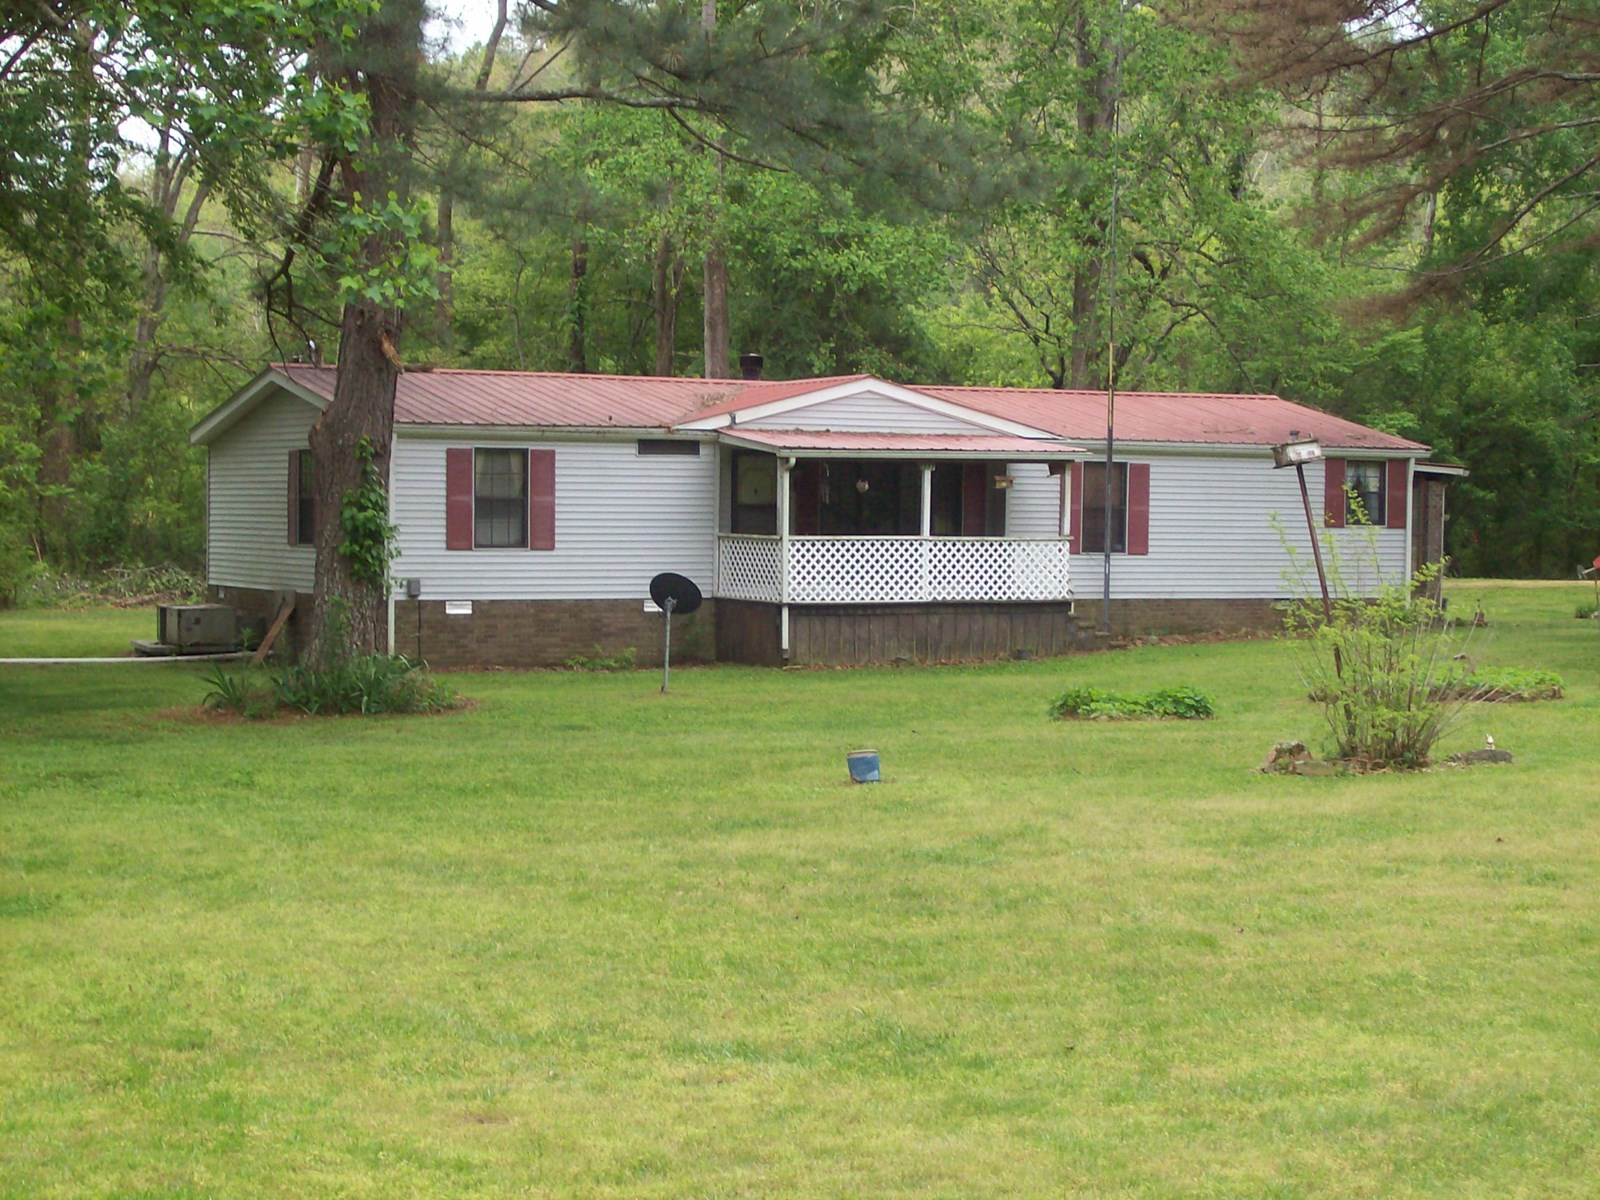 Manufactured Home in Centerville, TN.